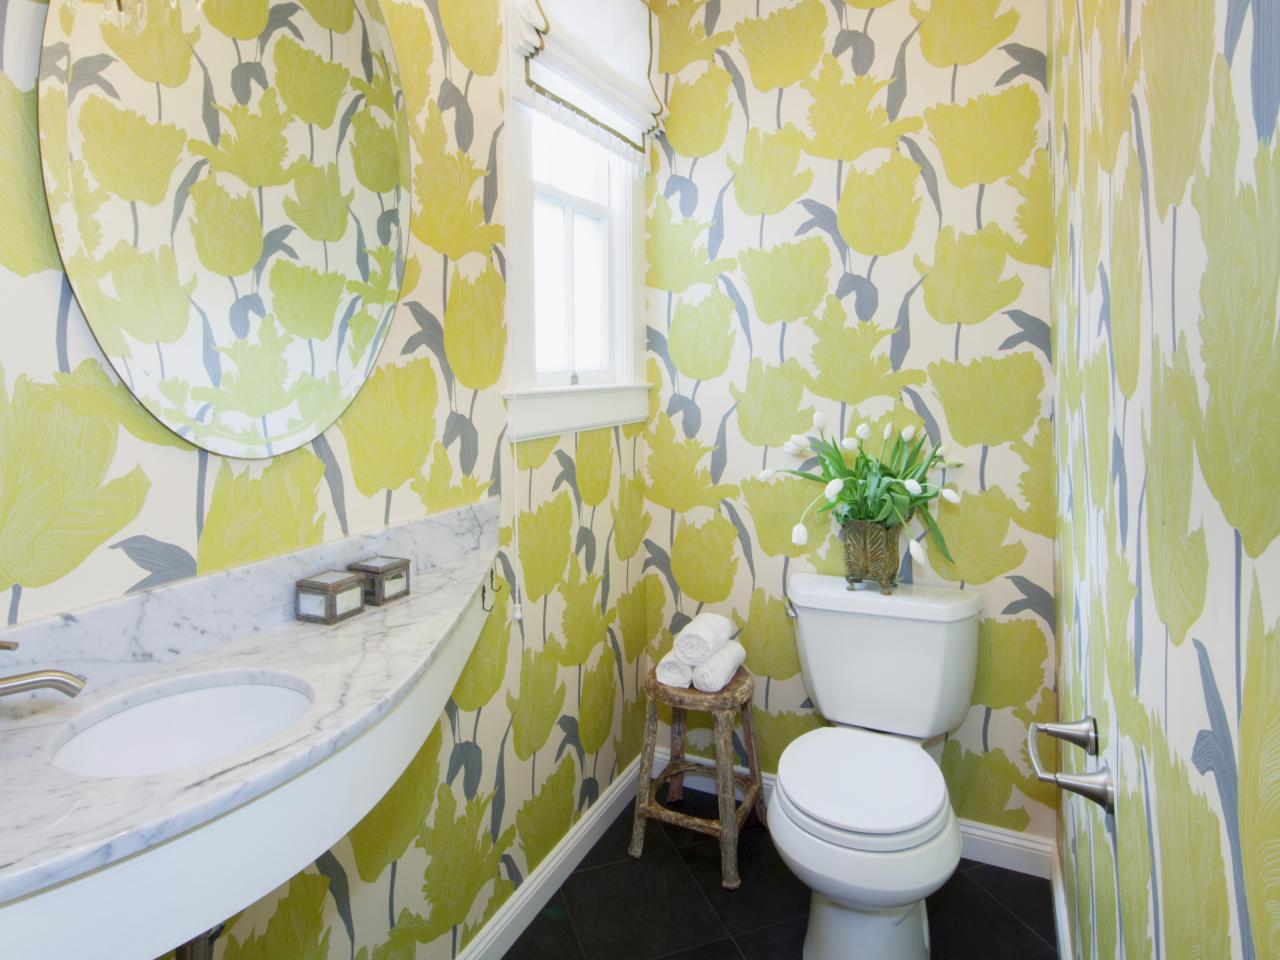 Planning a Bathroom Remodel: DIY or Hire a Pro? | DIY Network Blog ...